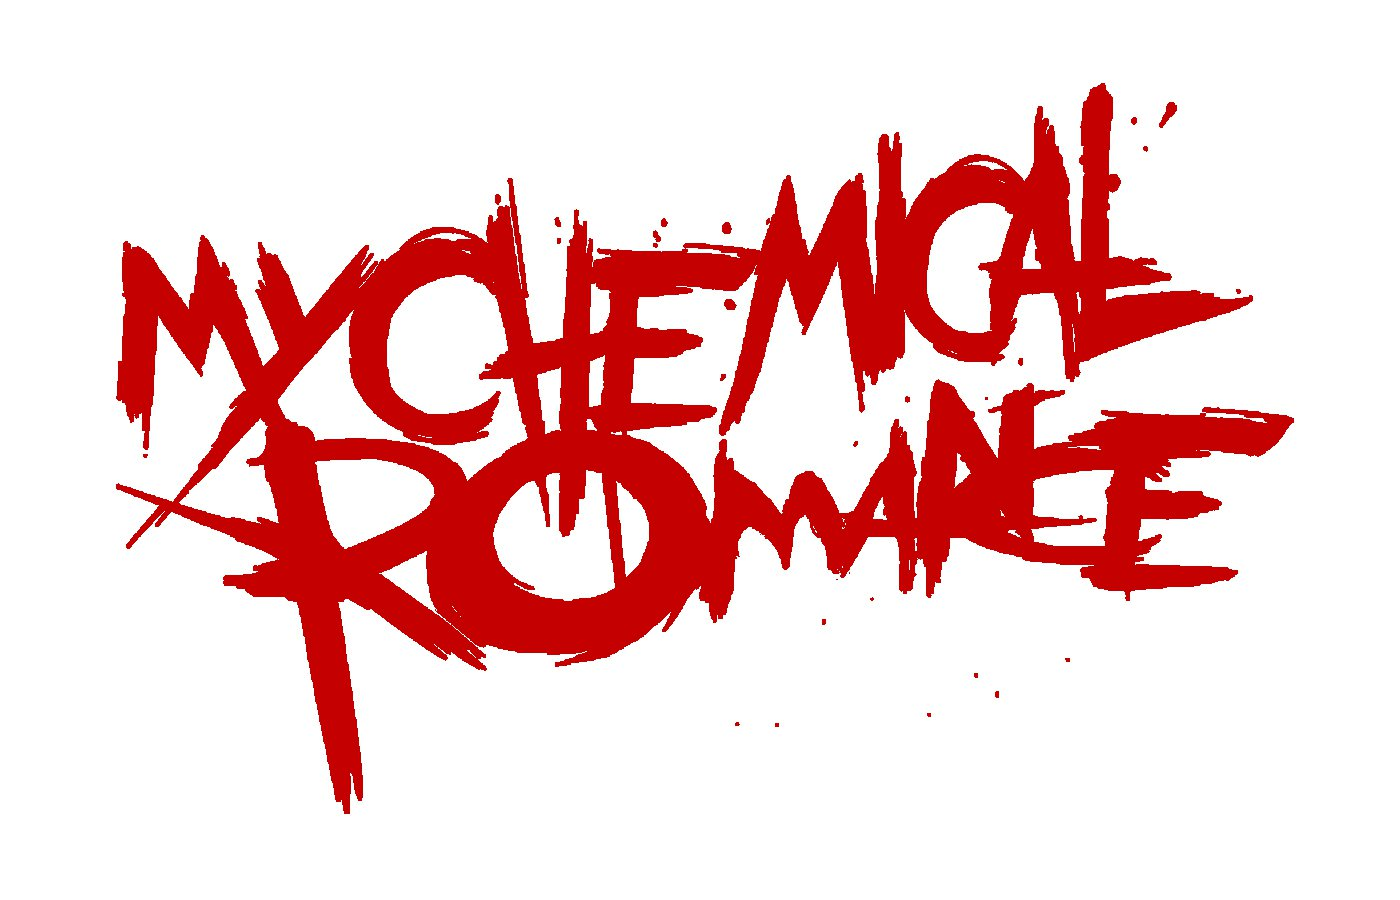 Meaning My Chemical Romance logo and symbol.